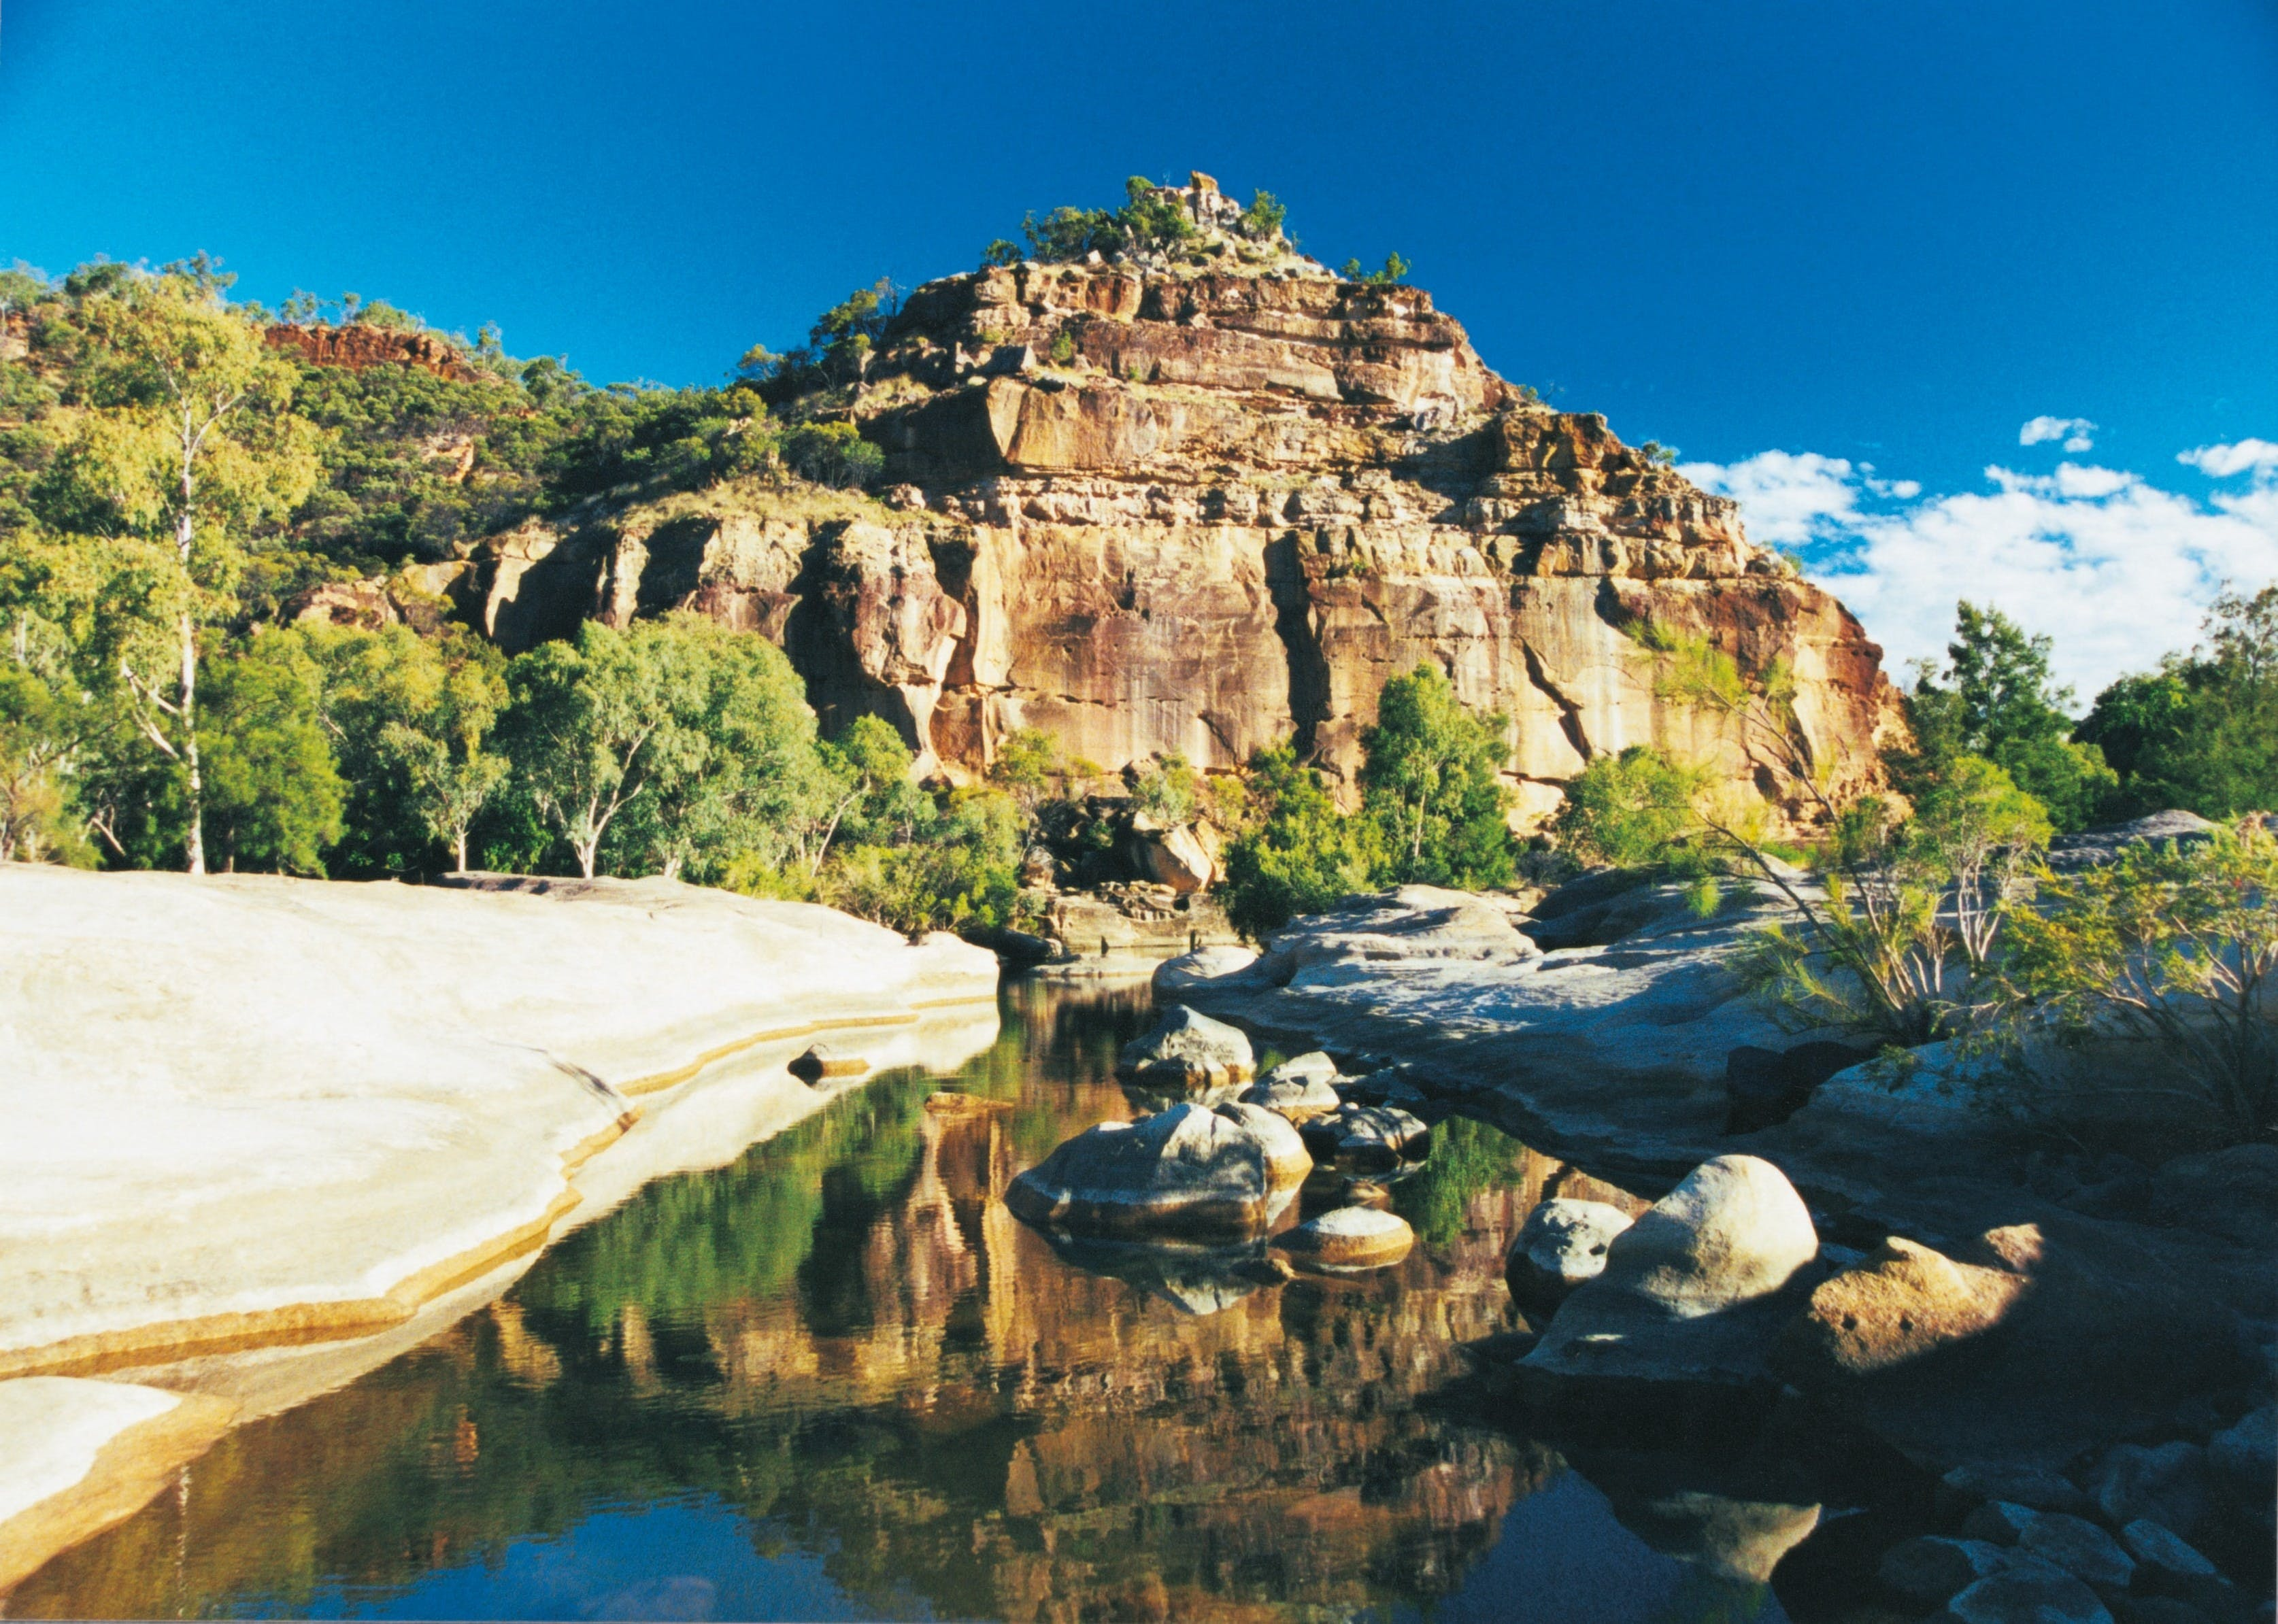 Porcupine Gorge National Park - Accommodation Cairns